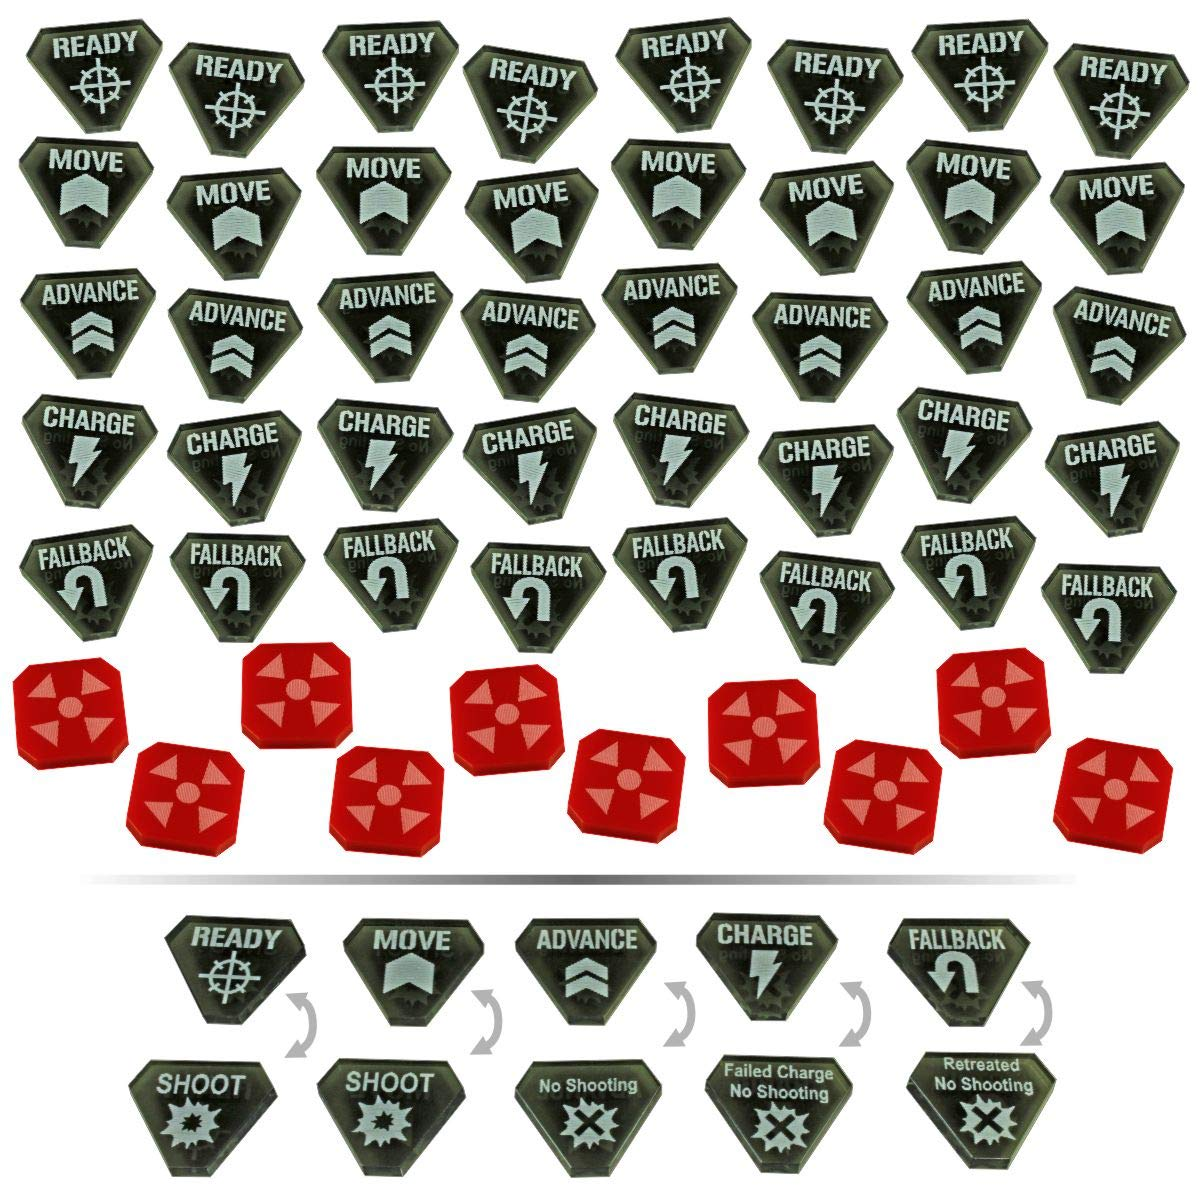 LITKO Combat Token Set Compatible with WH:KT, Translucent Grey & Red (50) by LITKO